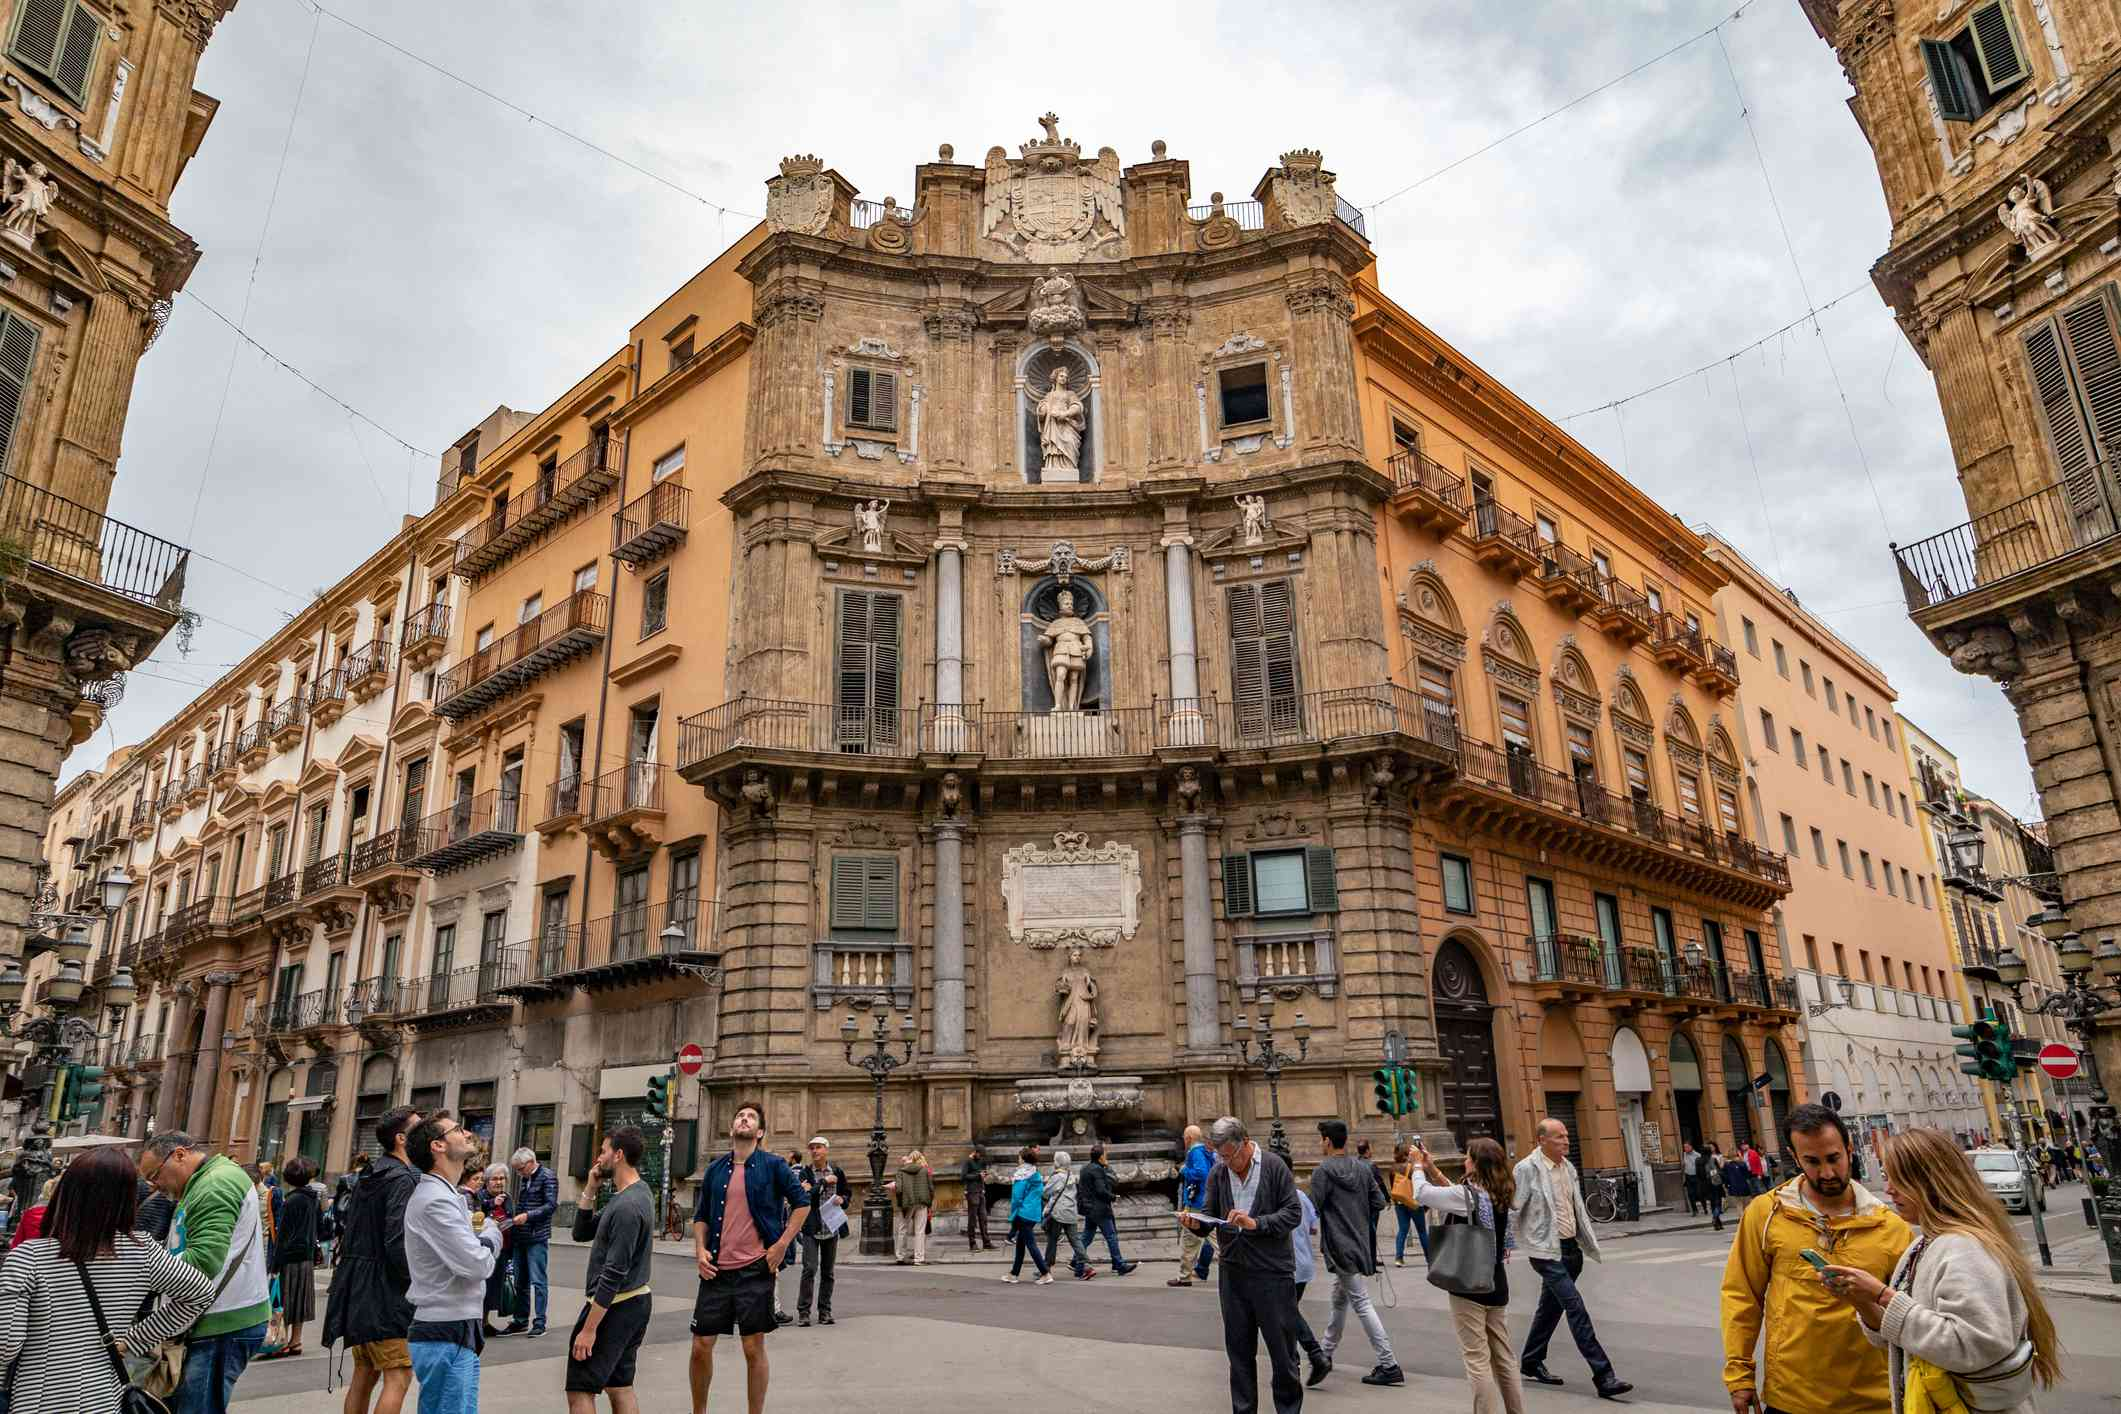 Quattro Canti junction of Via Maquade and Via V Emmanuele in Palermo, Sicily Italy